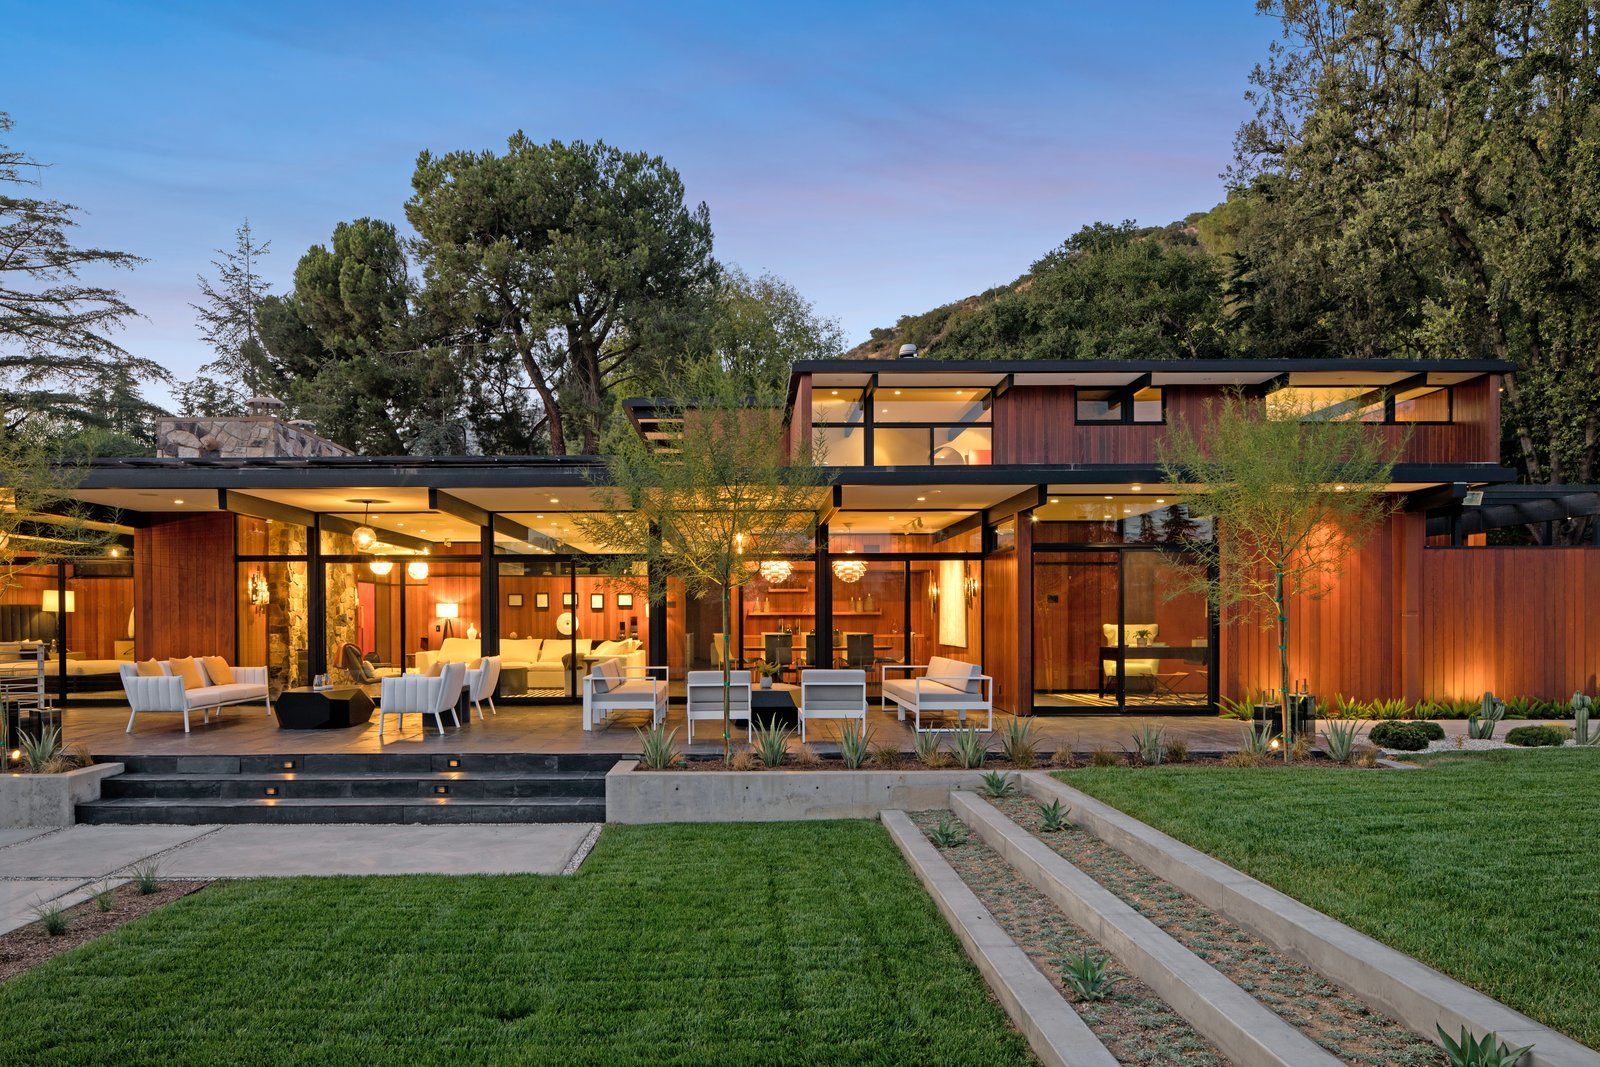 Set in the foothills of La Canada Flintridge, California, this 5,000-square-foot home composed of glass, steel, redwood, and stone was renovated for modern functionality while remaining sensitive to the surrounding landscape.